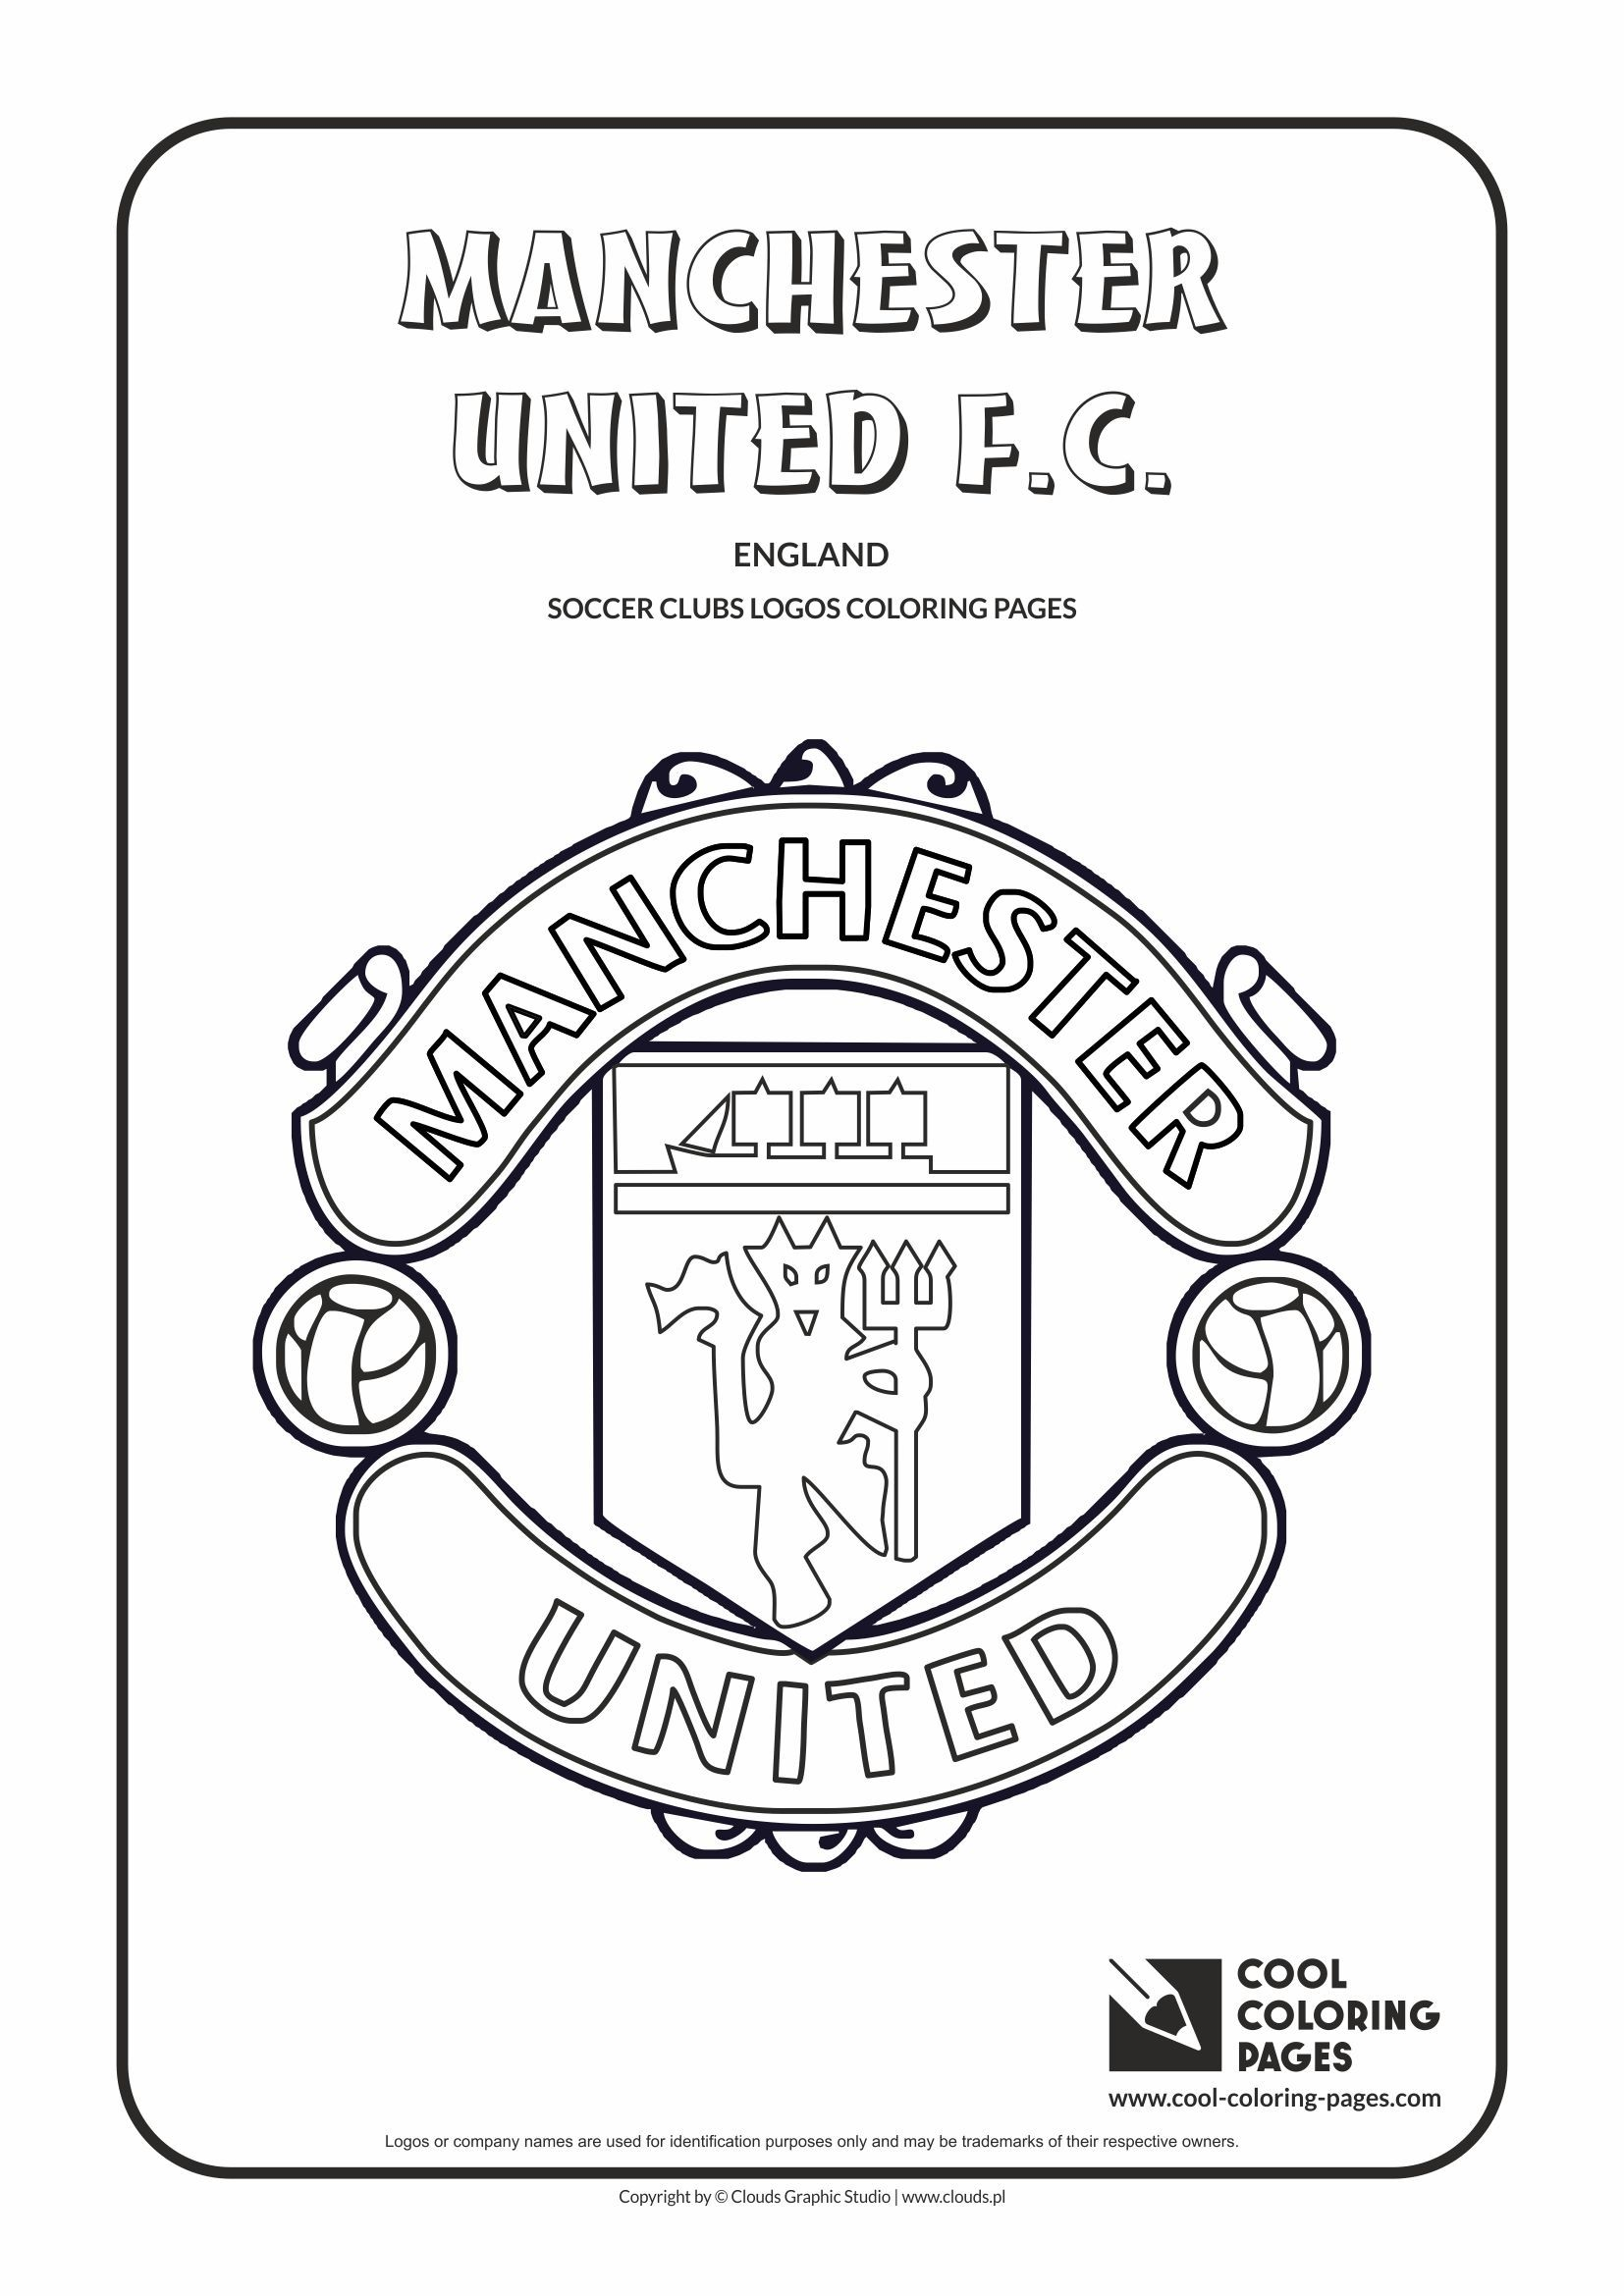 Cool Coloring Pages - Soccer Club Logos / Manchester United F.C. ...